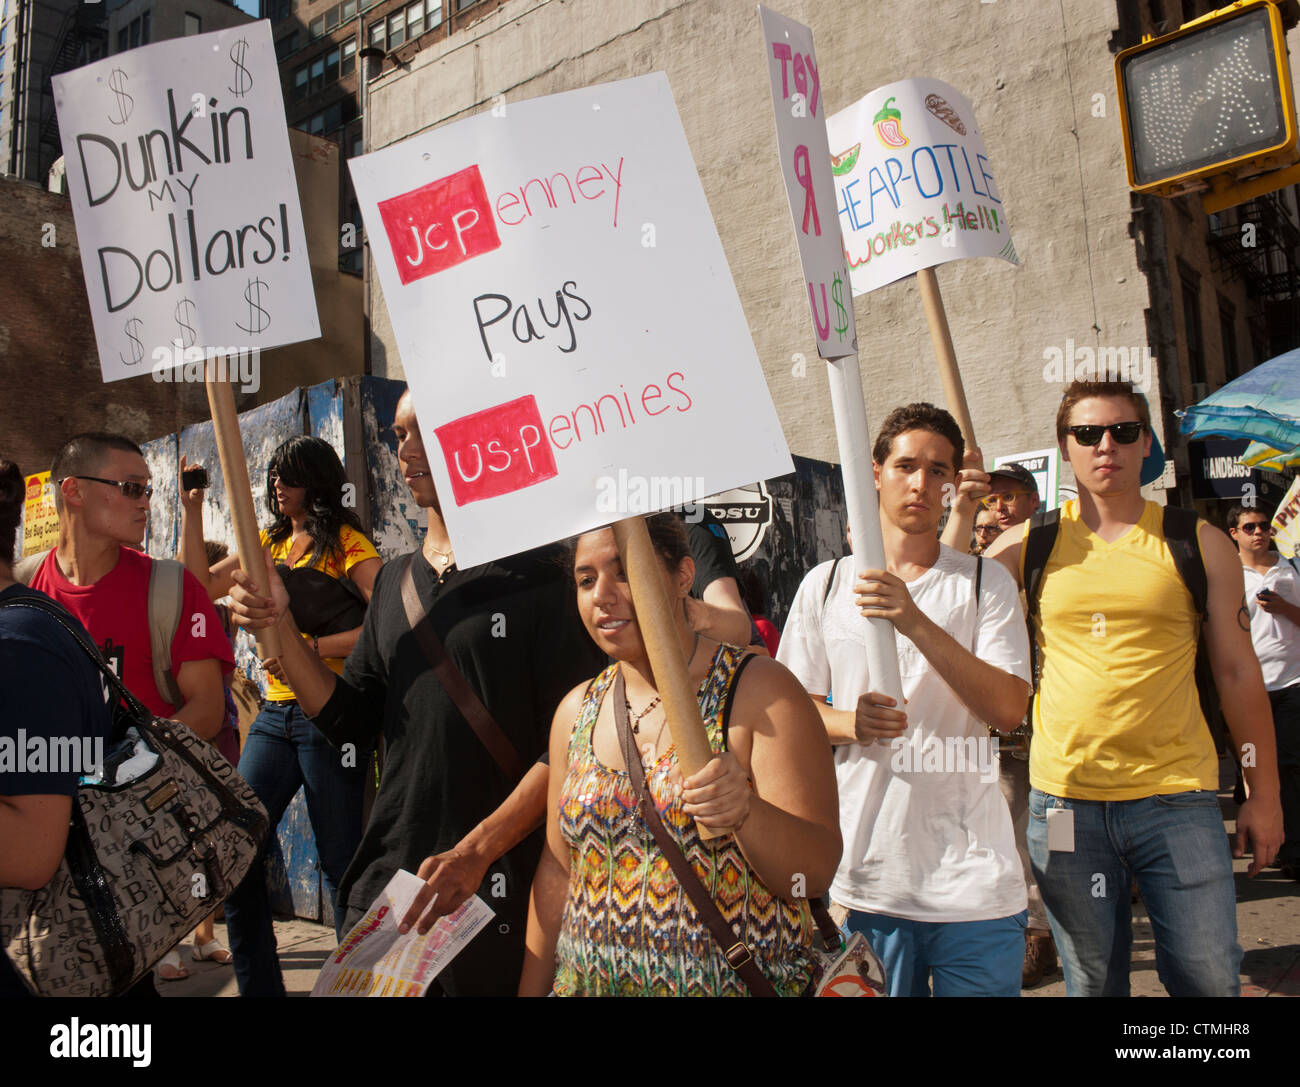 Hundreds of workers and supporters march in a demonstration for a living wage - Stock Image